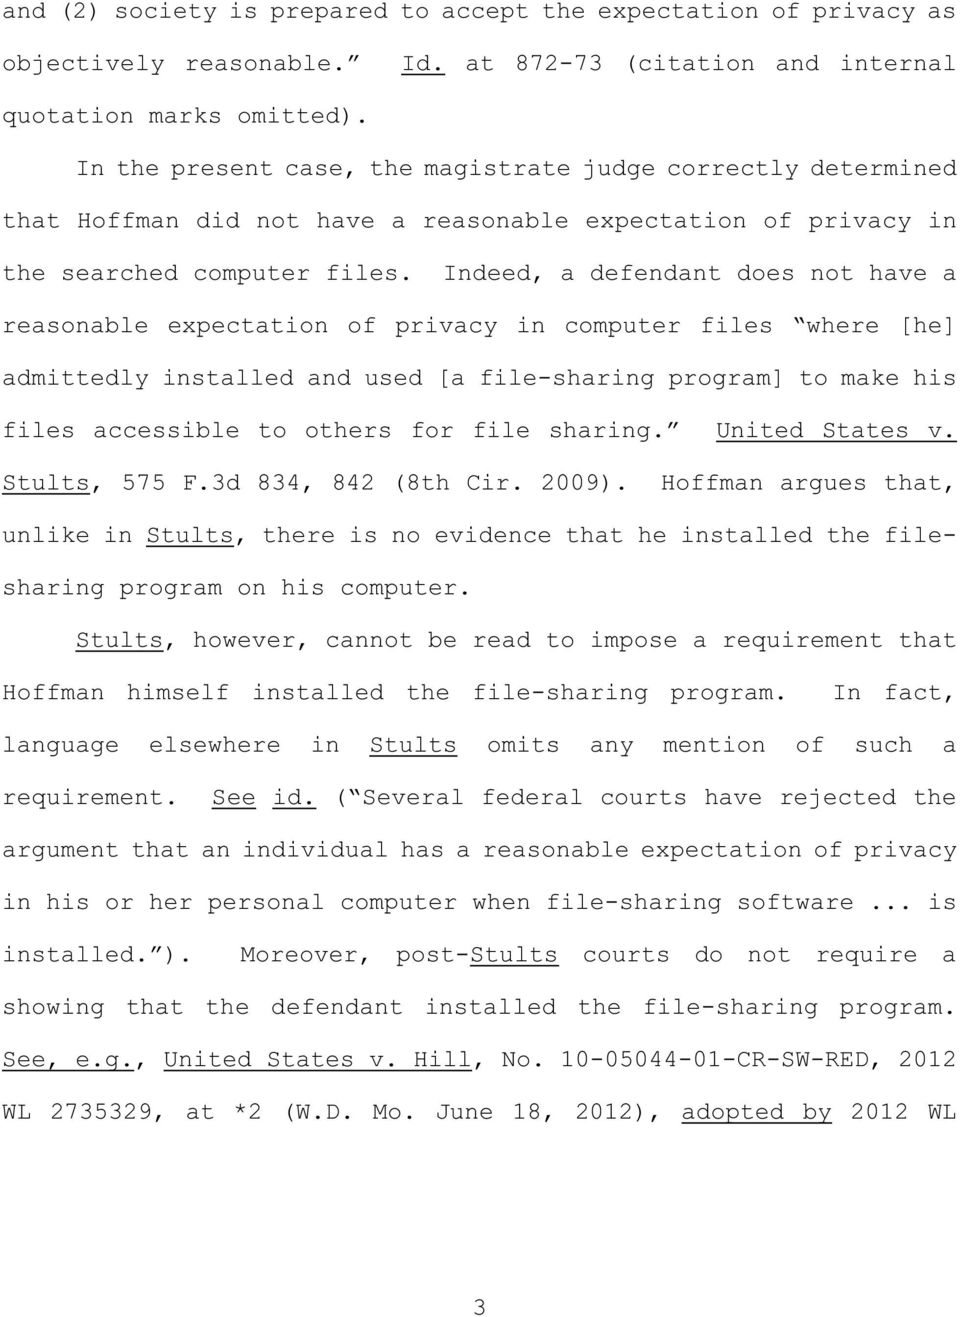 Indeed, a defendant does not have a reasonable expectation of privacy in computer files where [he] admittedly installed and used [a file-sharing program] to make his files accessible to others for